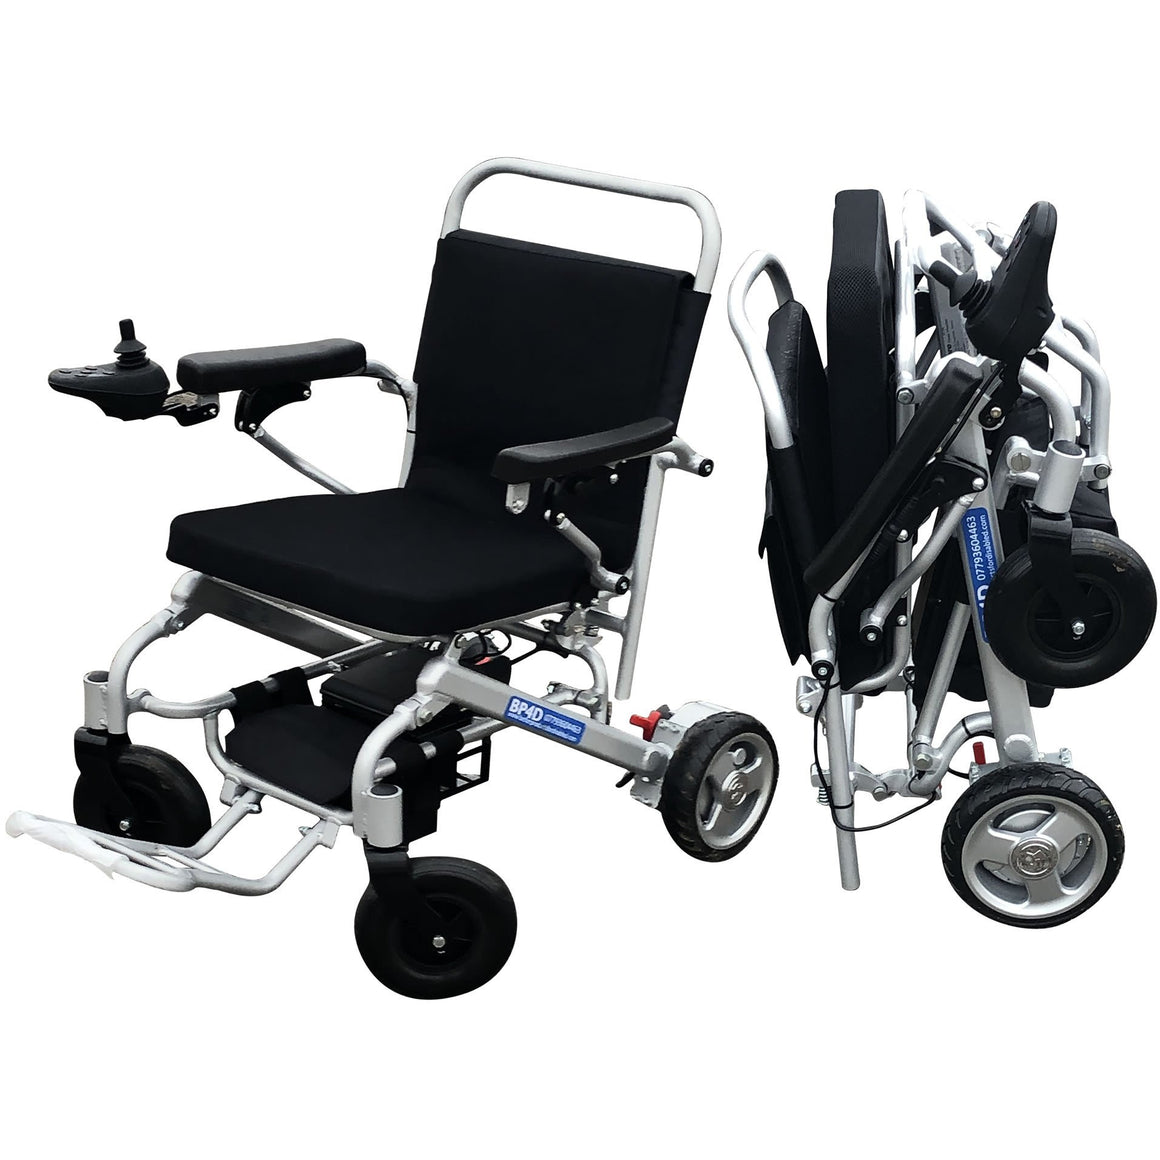 F6 lightweight folding powerchair supplied by BP4D